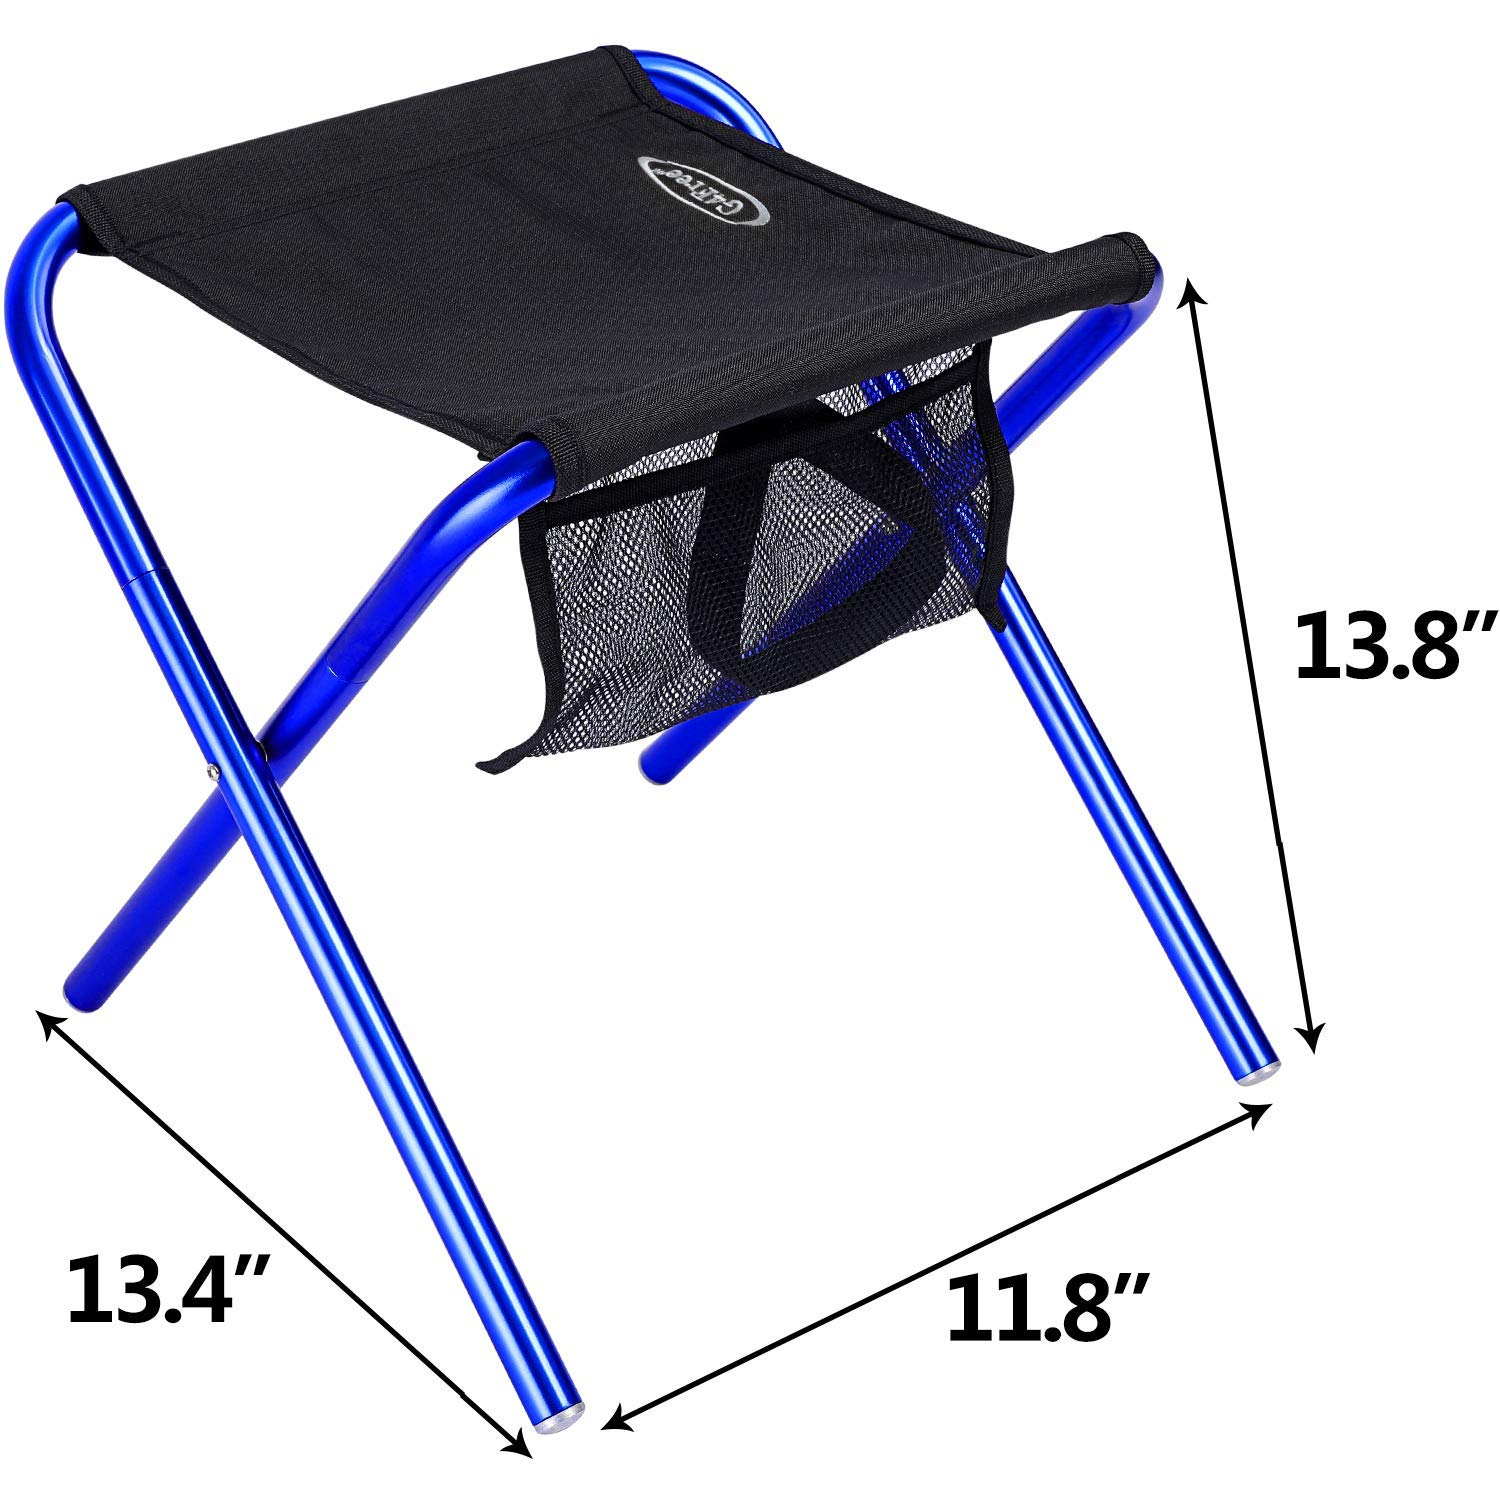 G4Free Upgraded Folding Camping Stool Size 13.4 x11.8 x13.8 for Outdoor BBQ Fishing